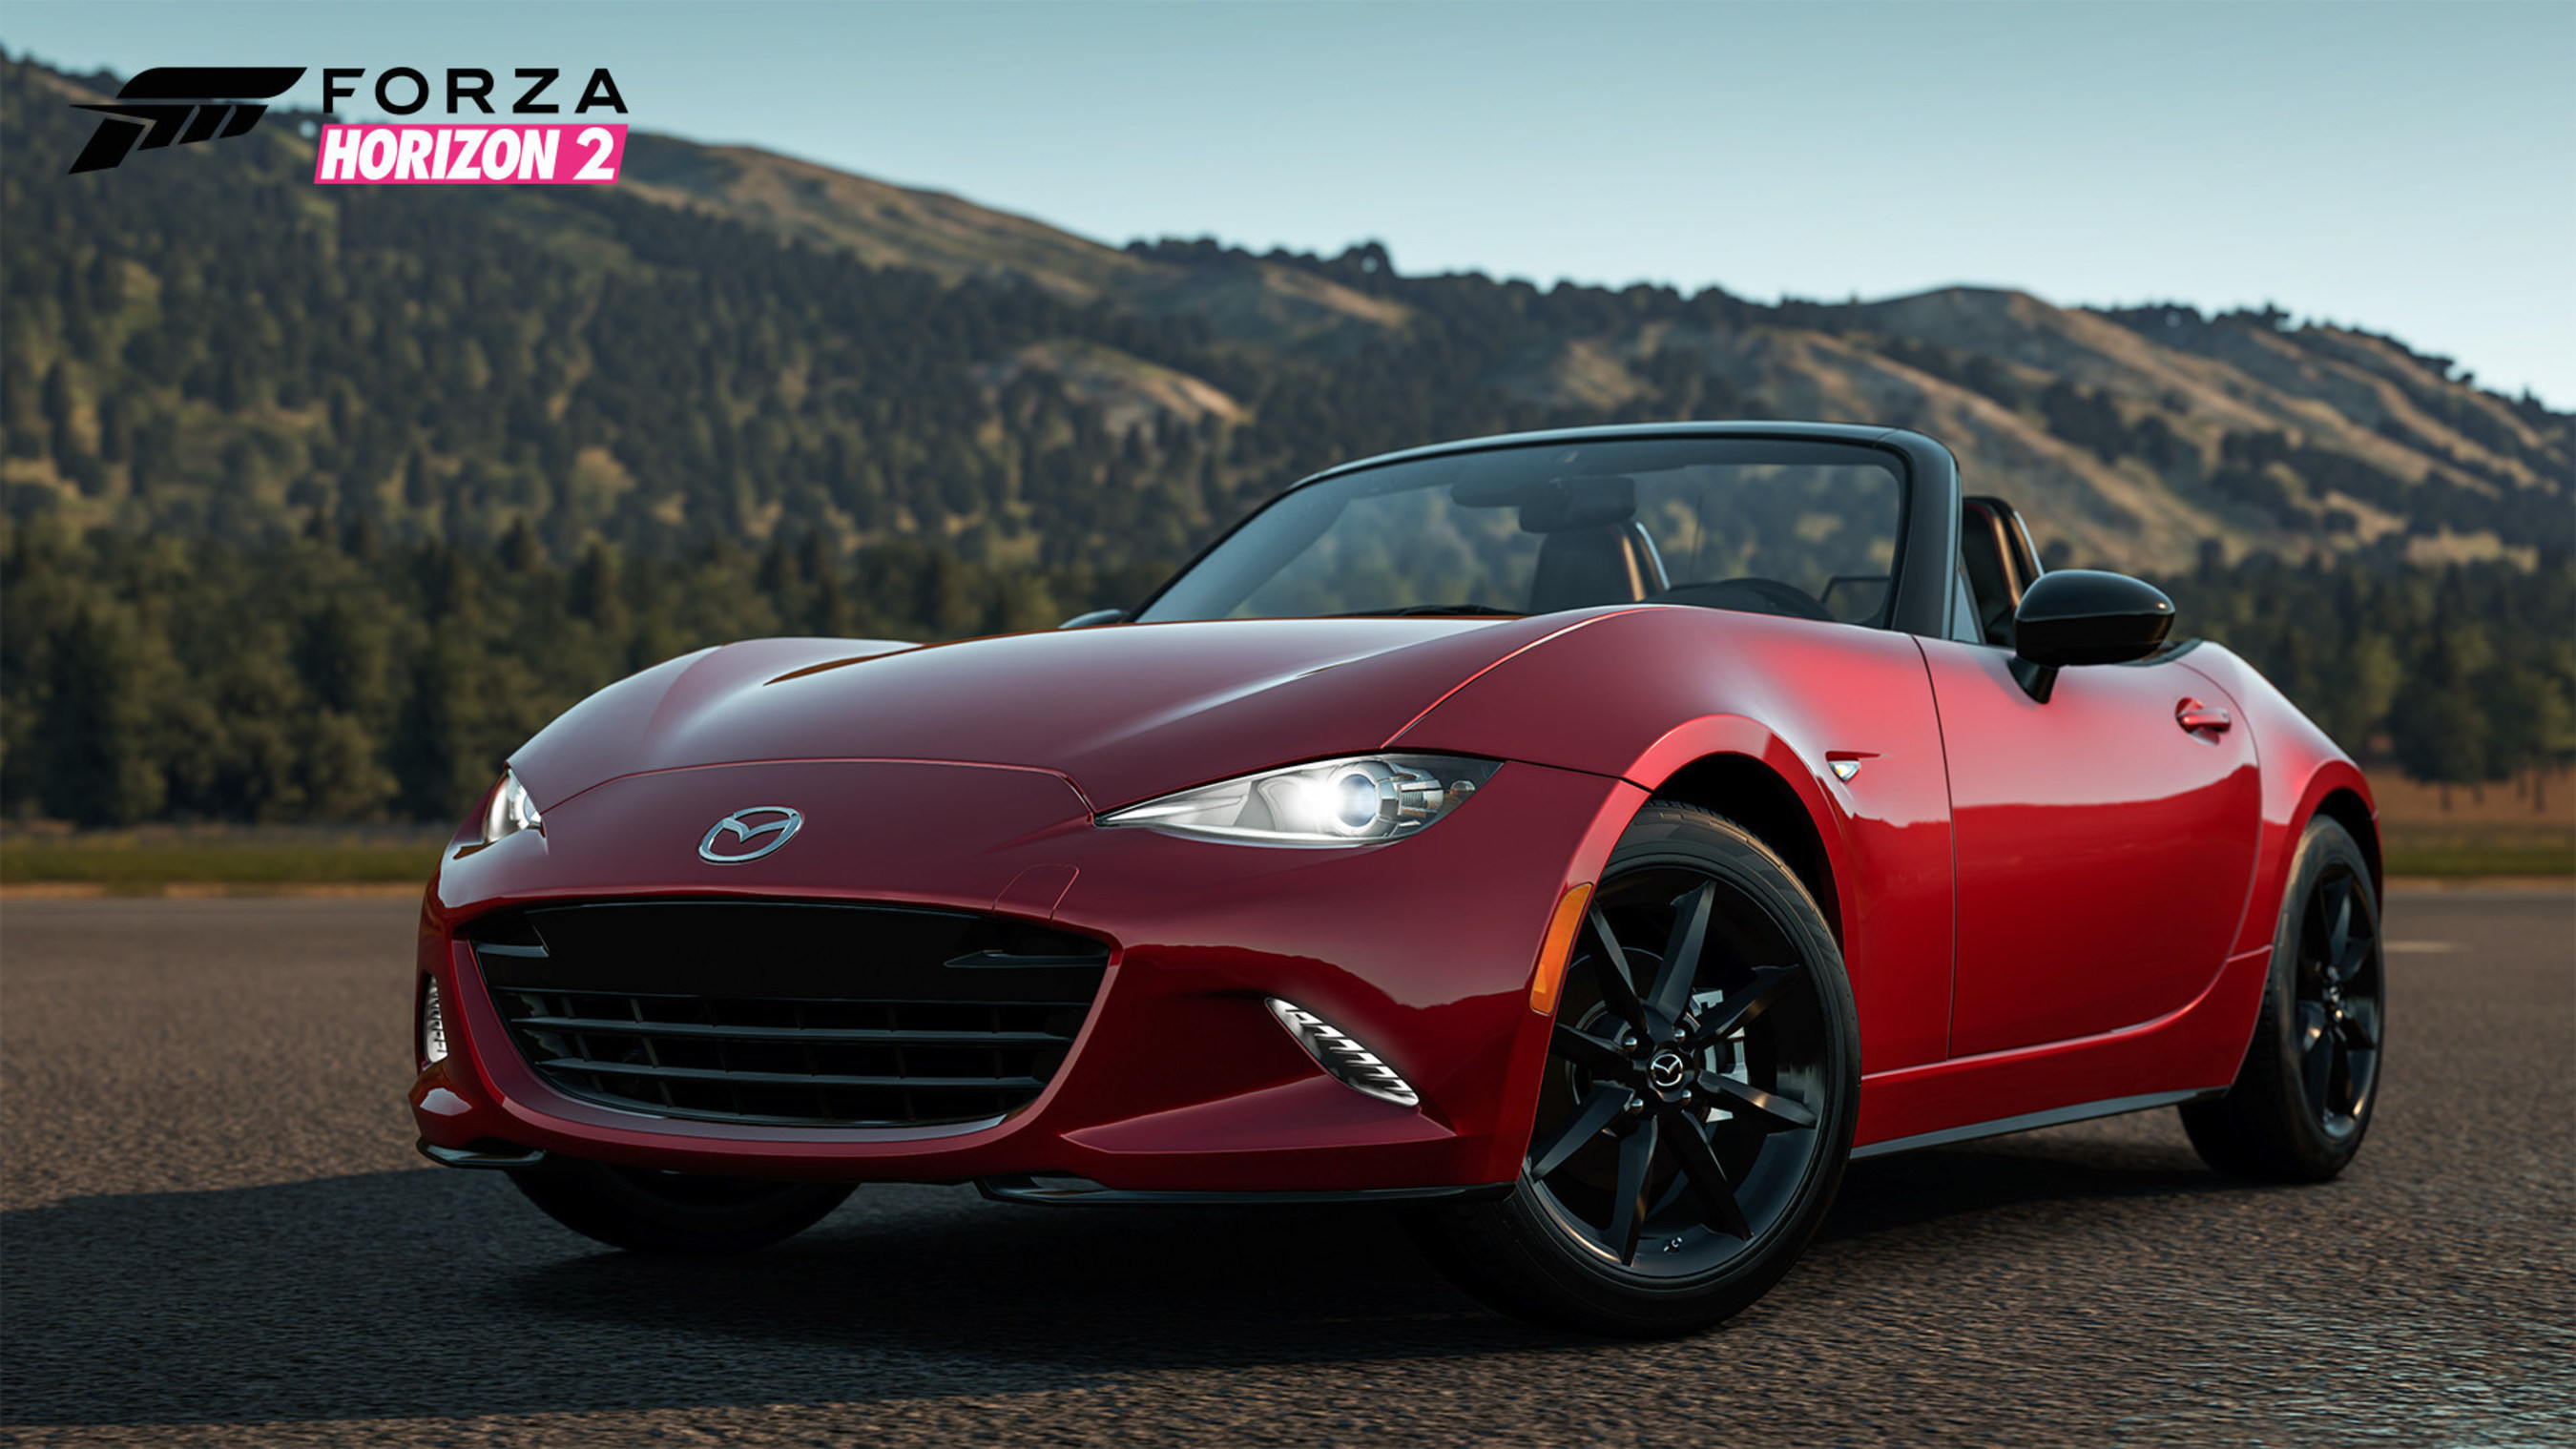 MICROSOFT AND MAZDA LET YOU DRIVE IT FIRST: ALL-NEW 2016 MAZDA MX-5 DEBUTS AS FREE DOWNLOAD FOR FORZA HORIZON 2 ON XBOX ONE